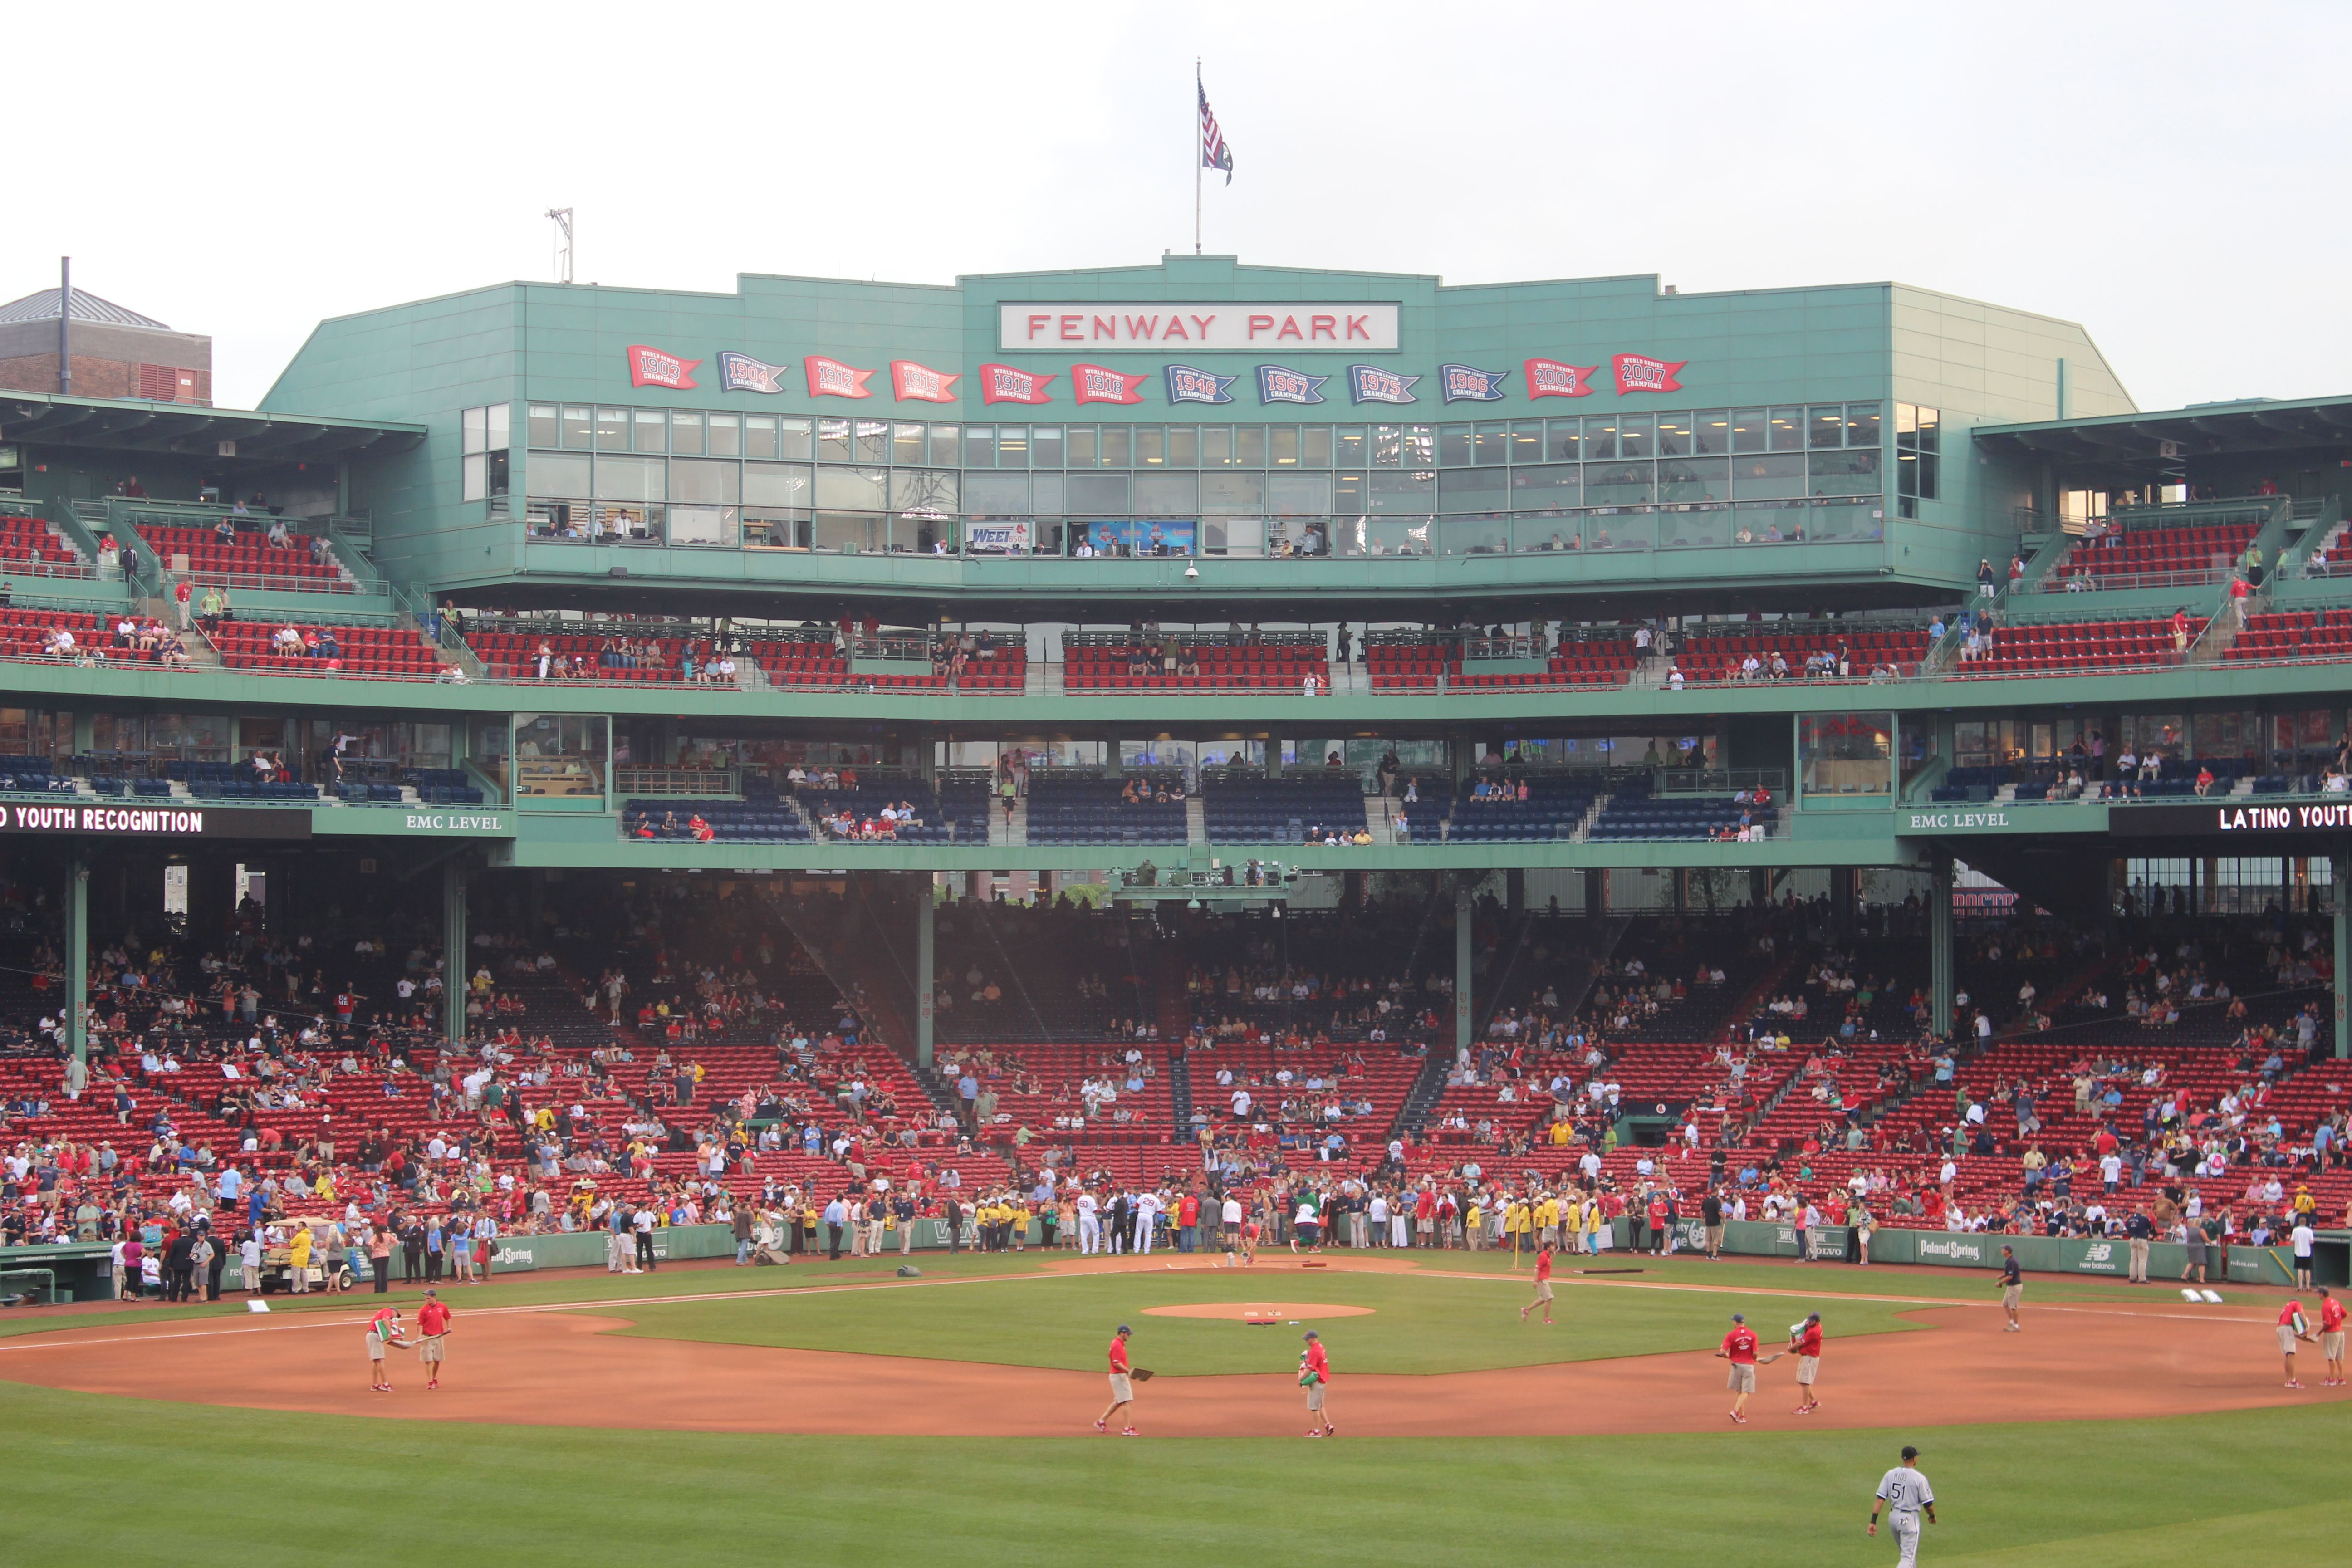 Nice Fenway Park Wallpapers In High Quality Cerys Agerskow 5184x3456 1703 MB